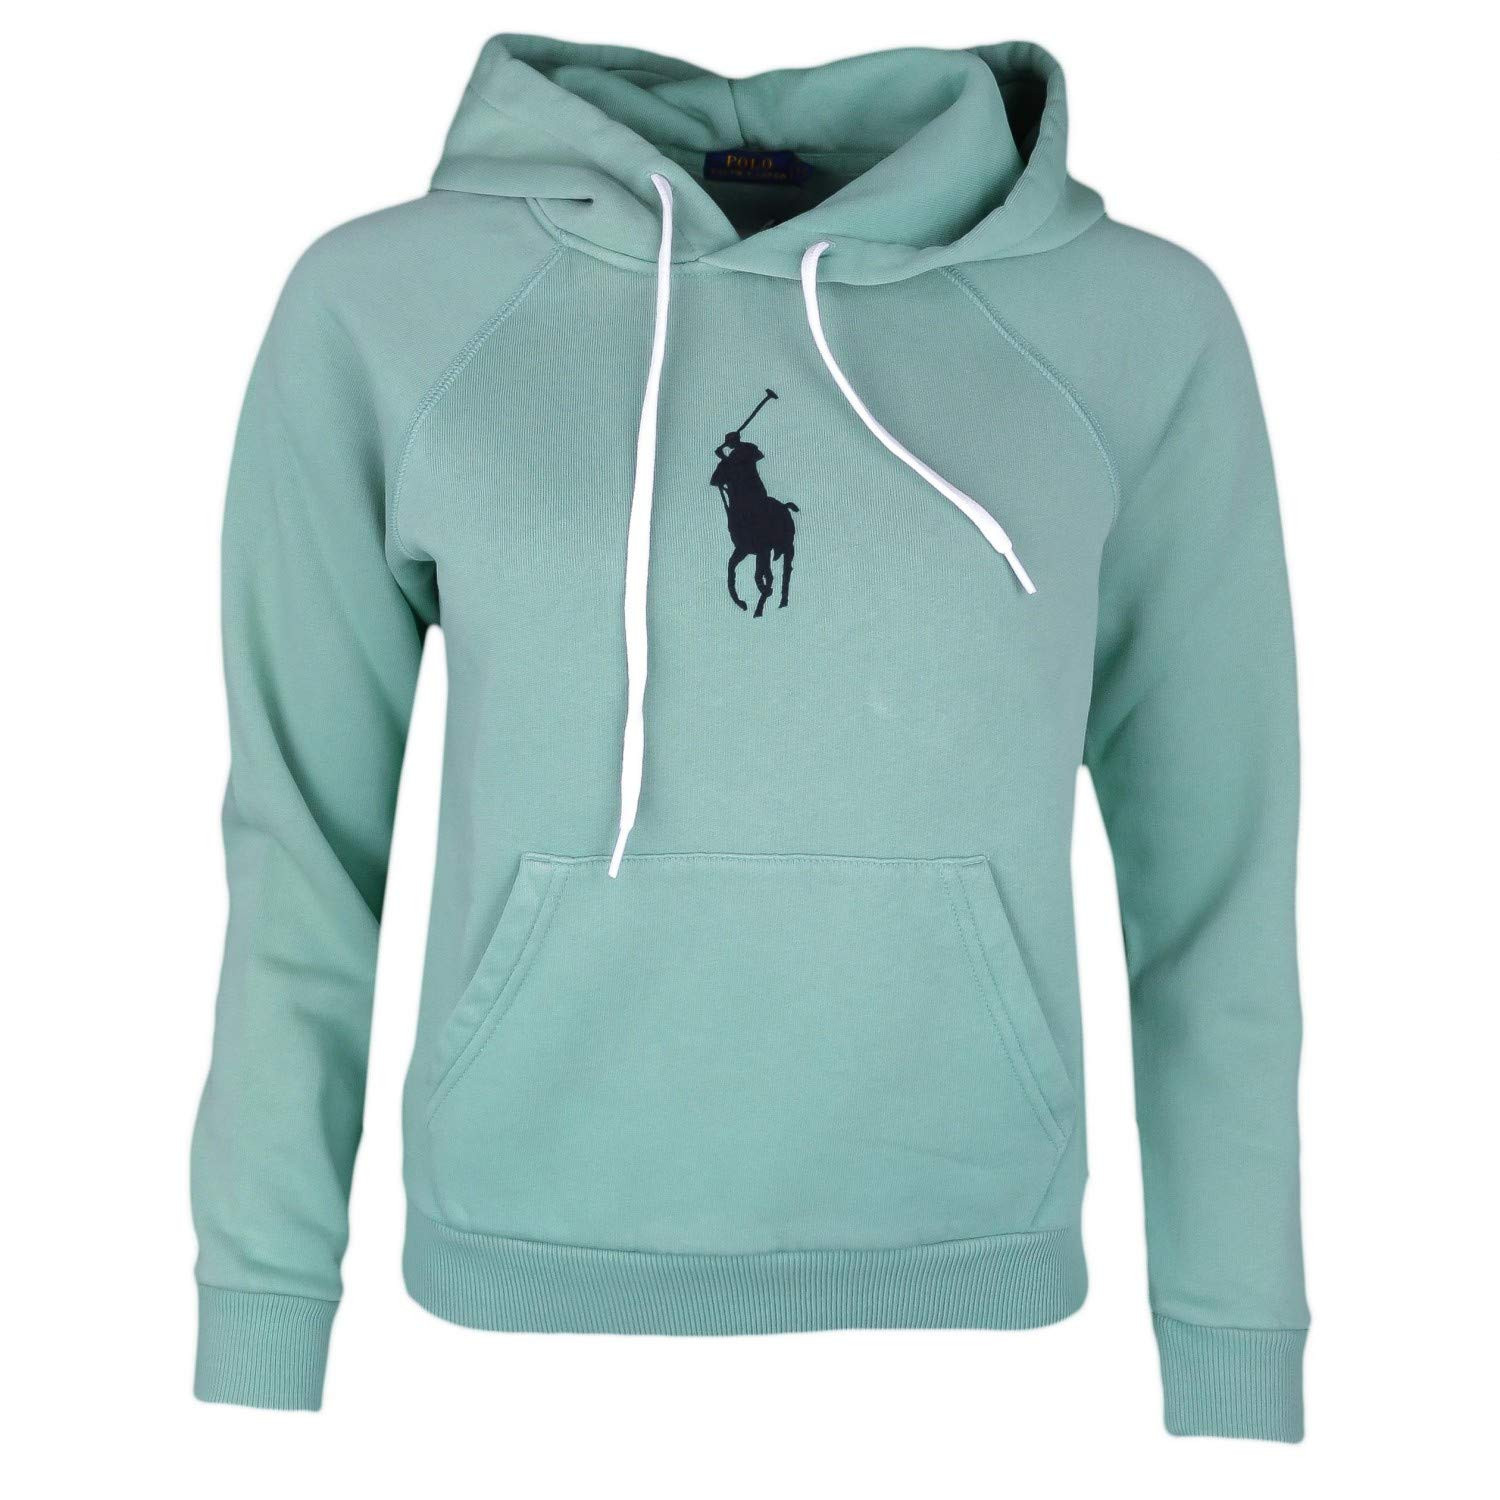 Large choix \u003e sweat capuche ralph lauren